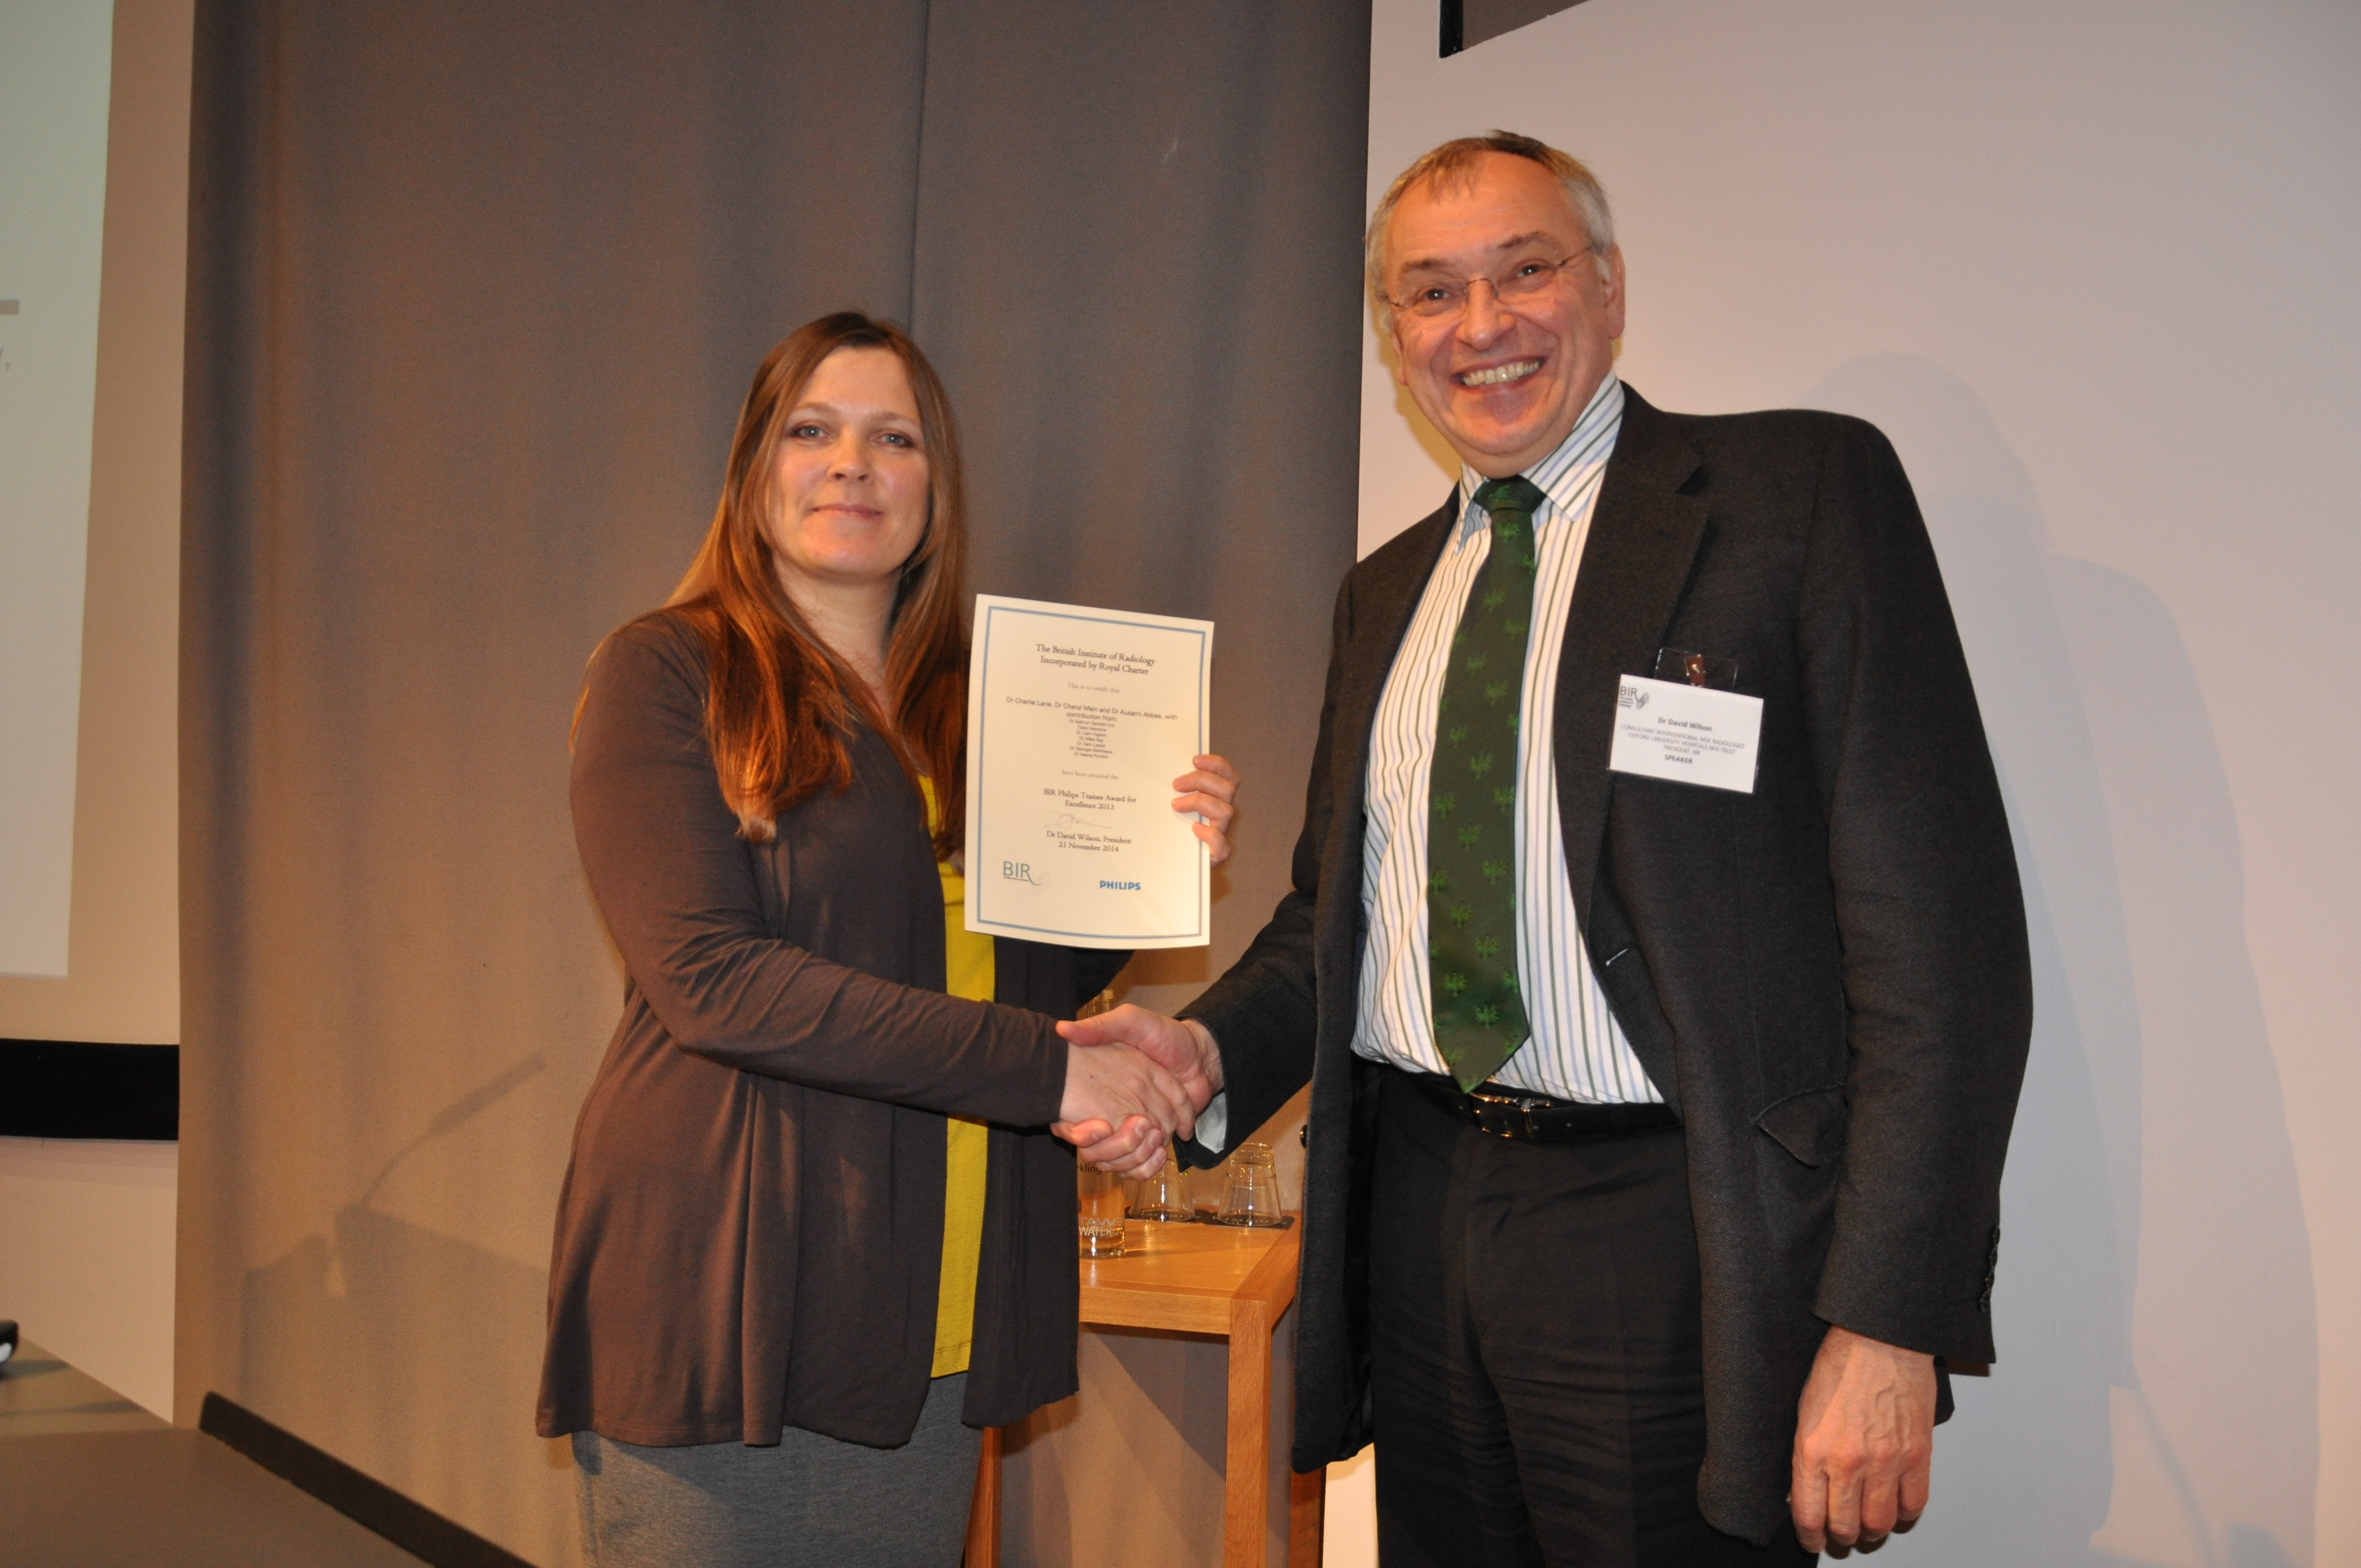 Philips Student Award winner 2013 Dr Cheryl Main with David Wilson